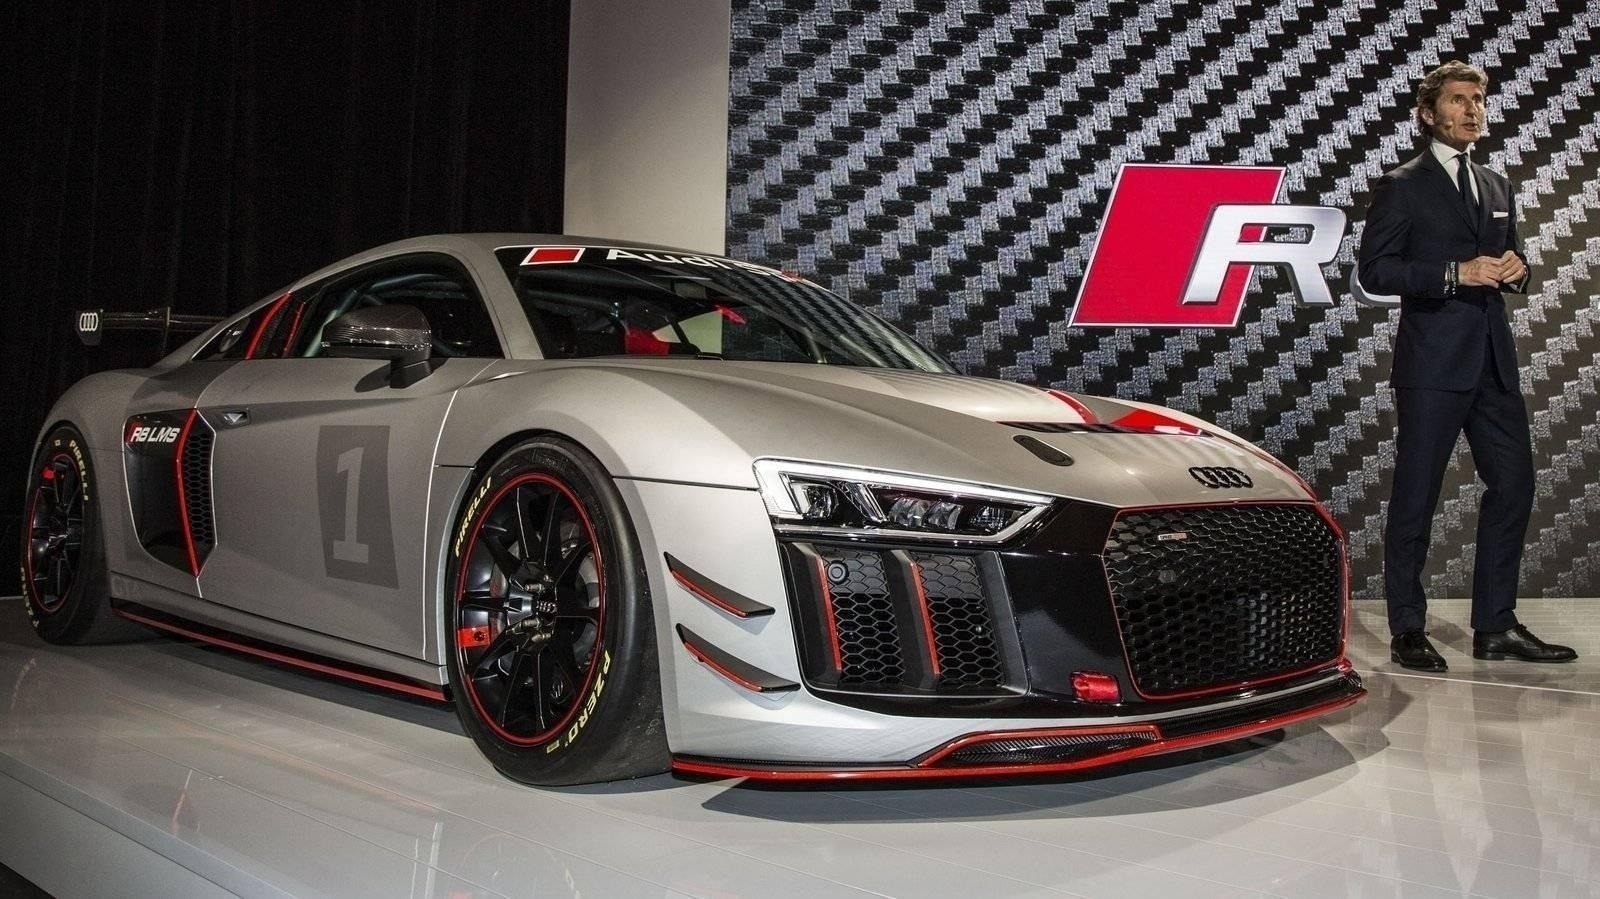 34 The Best 2020 Audi R8 LMXs First Drive